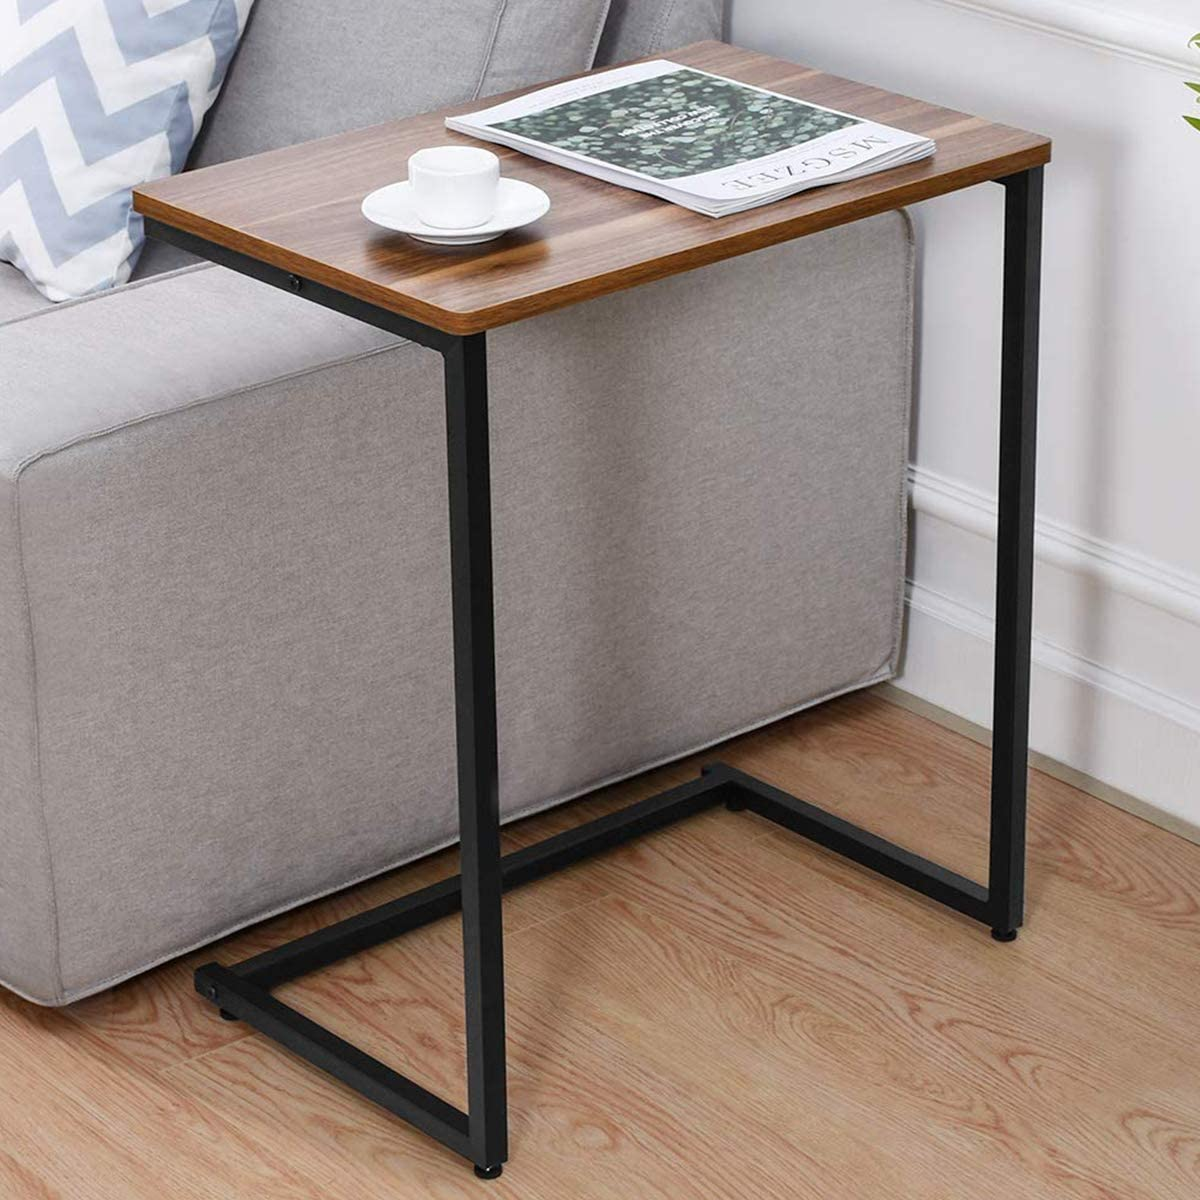 Sofa Side End Table C Table Multiple Standing Desk, 26-Inch Standing Work Desk for Small Space